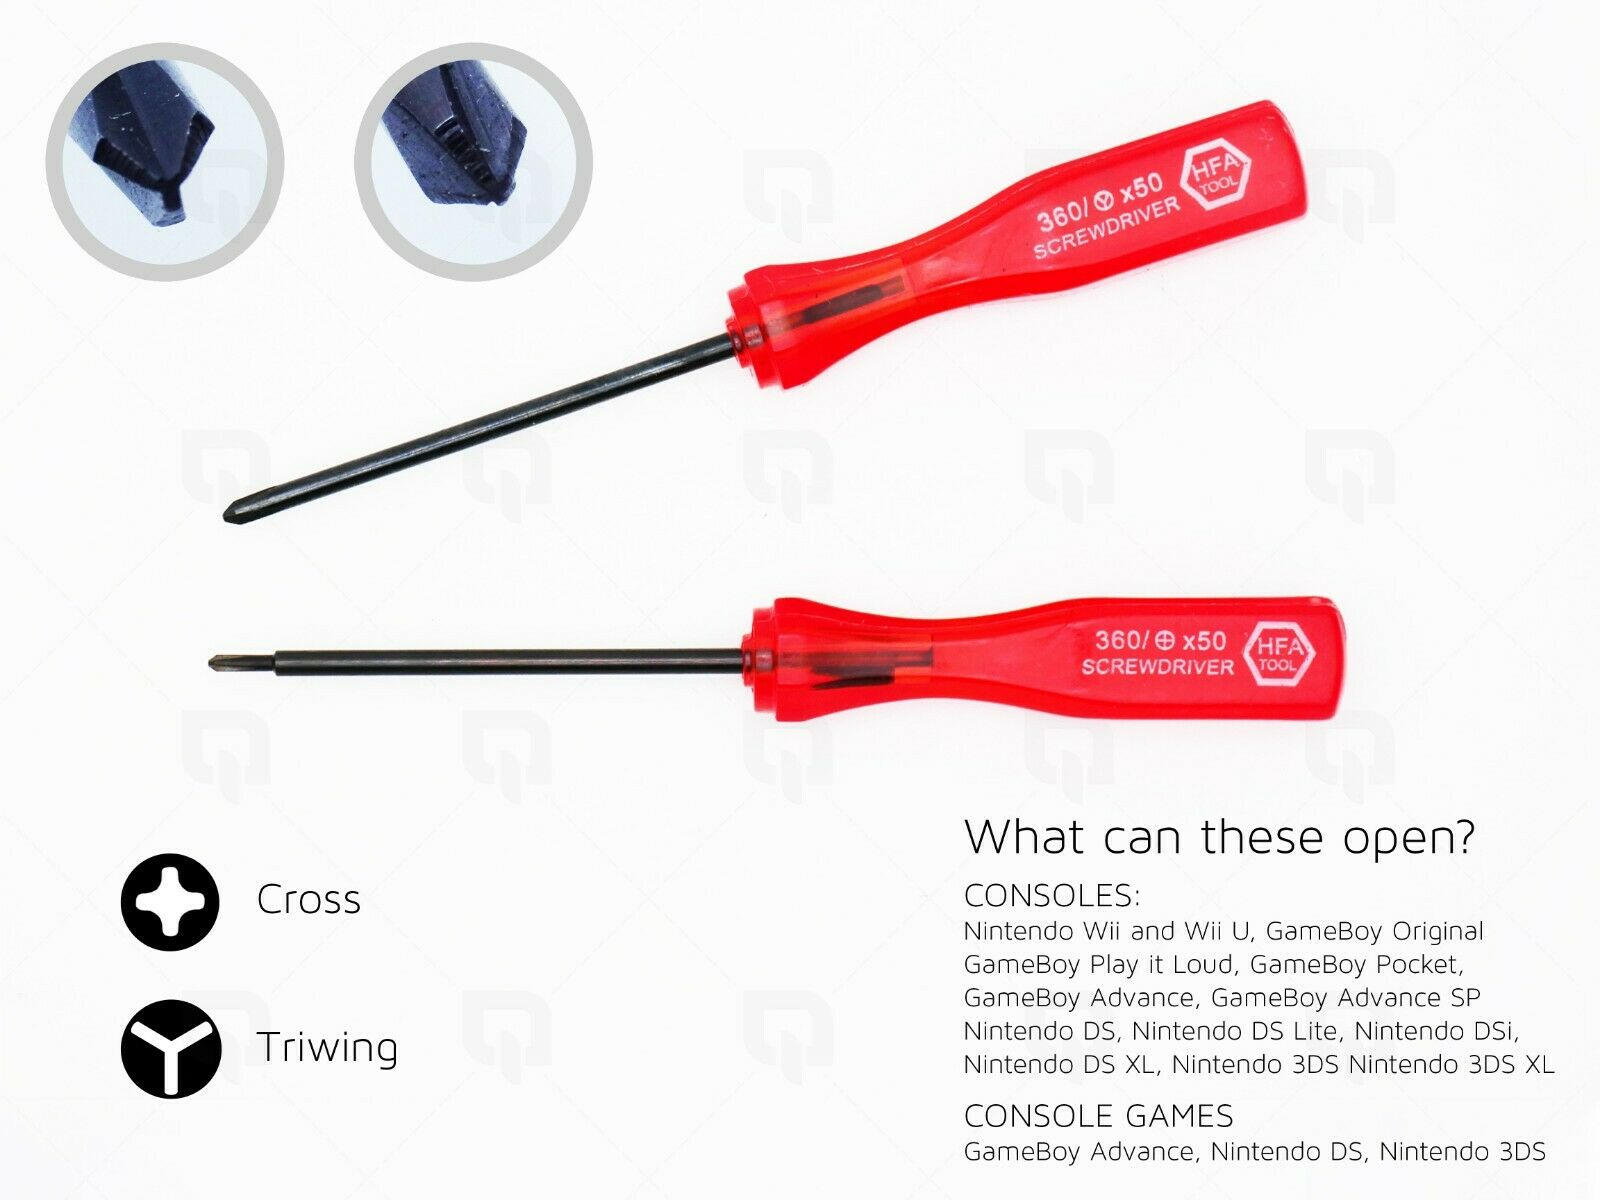 2x Screwdriver Cross Head Drivers for GBA DSL NDS PS4 Controller 3DS XL